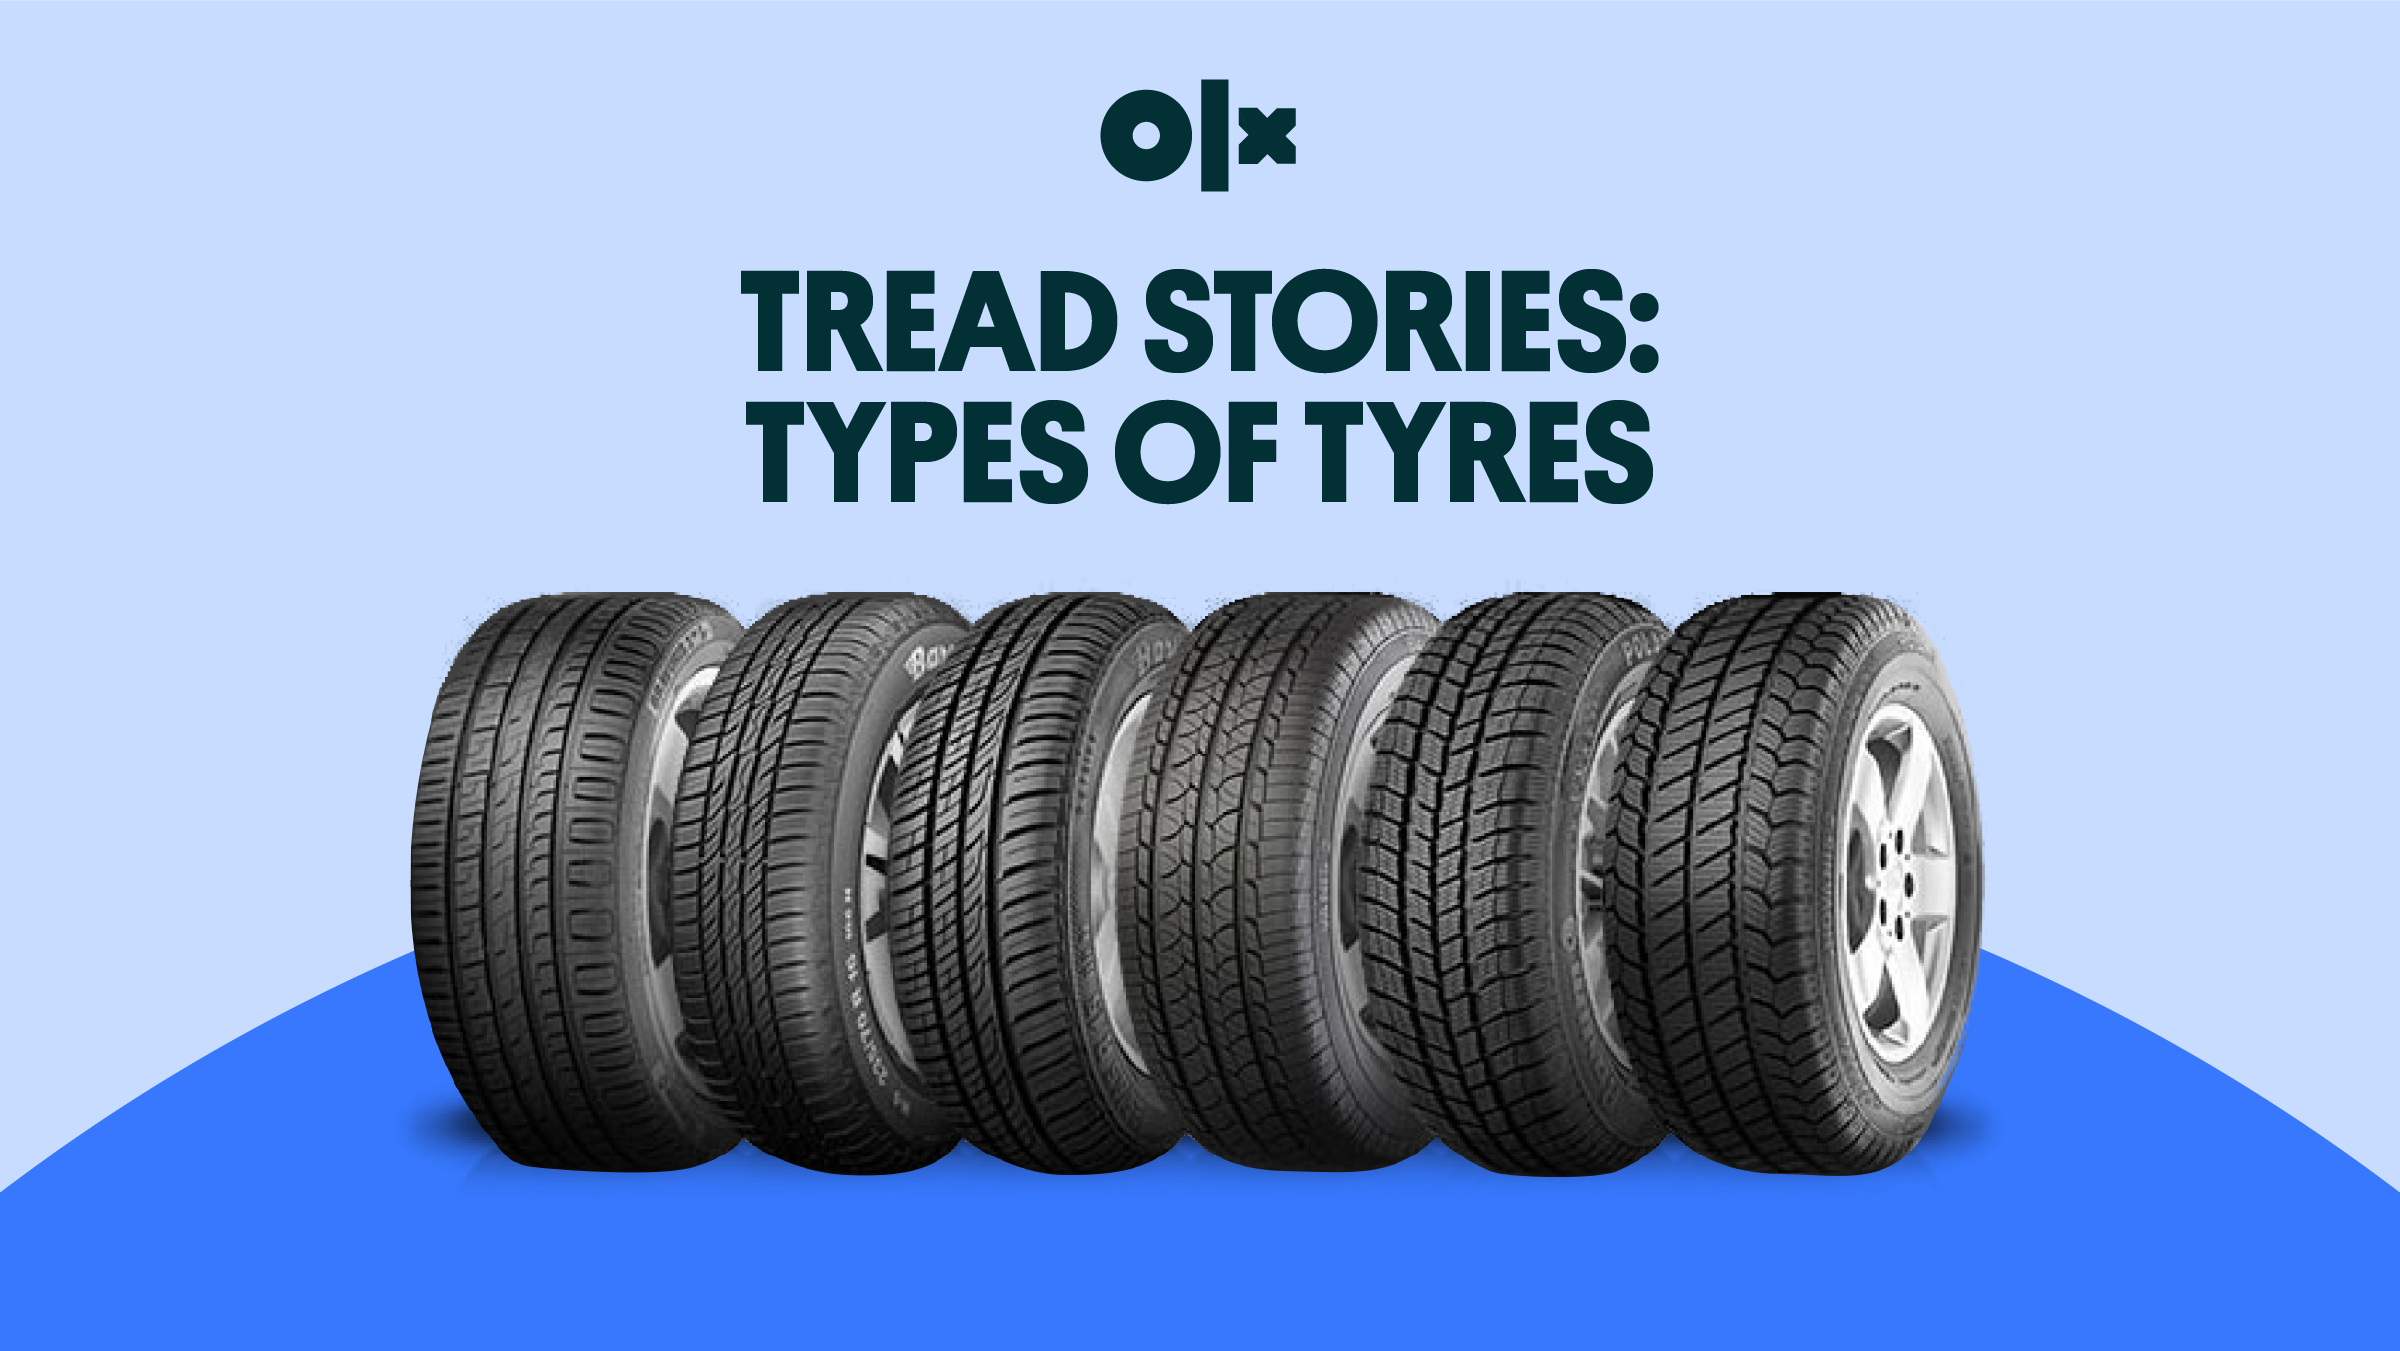 Tread Stories: Types of Tyres